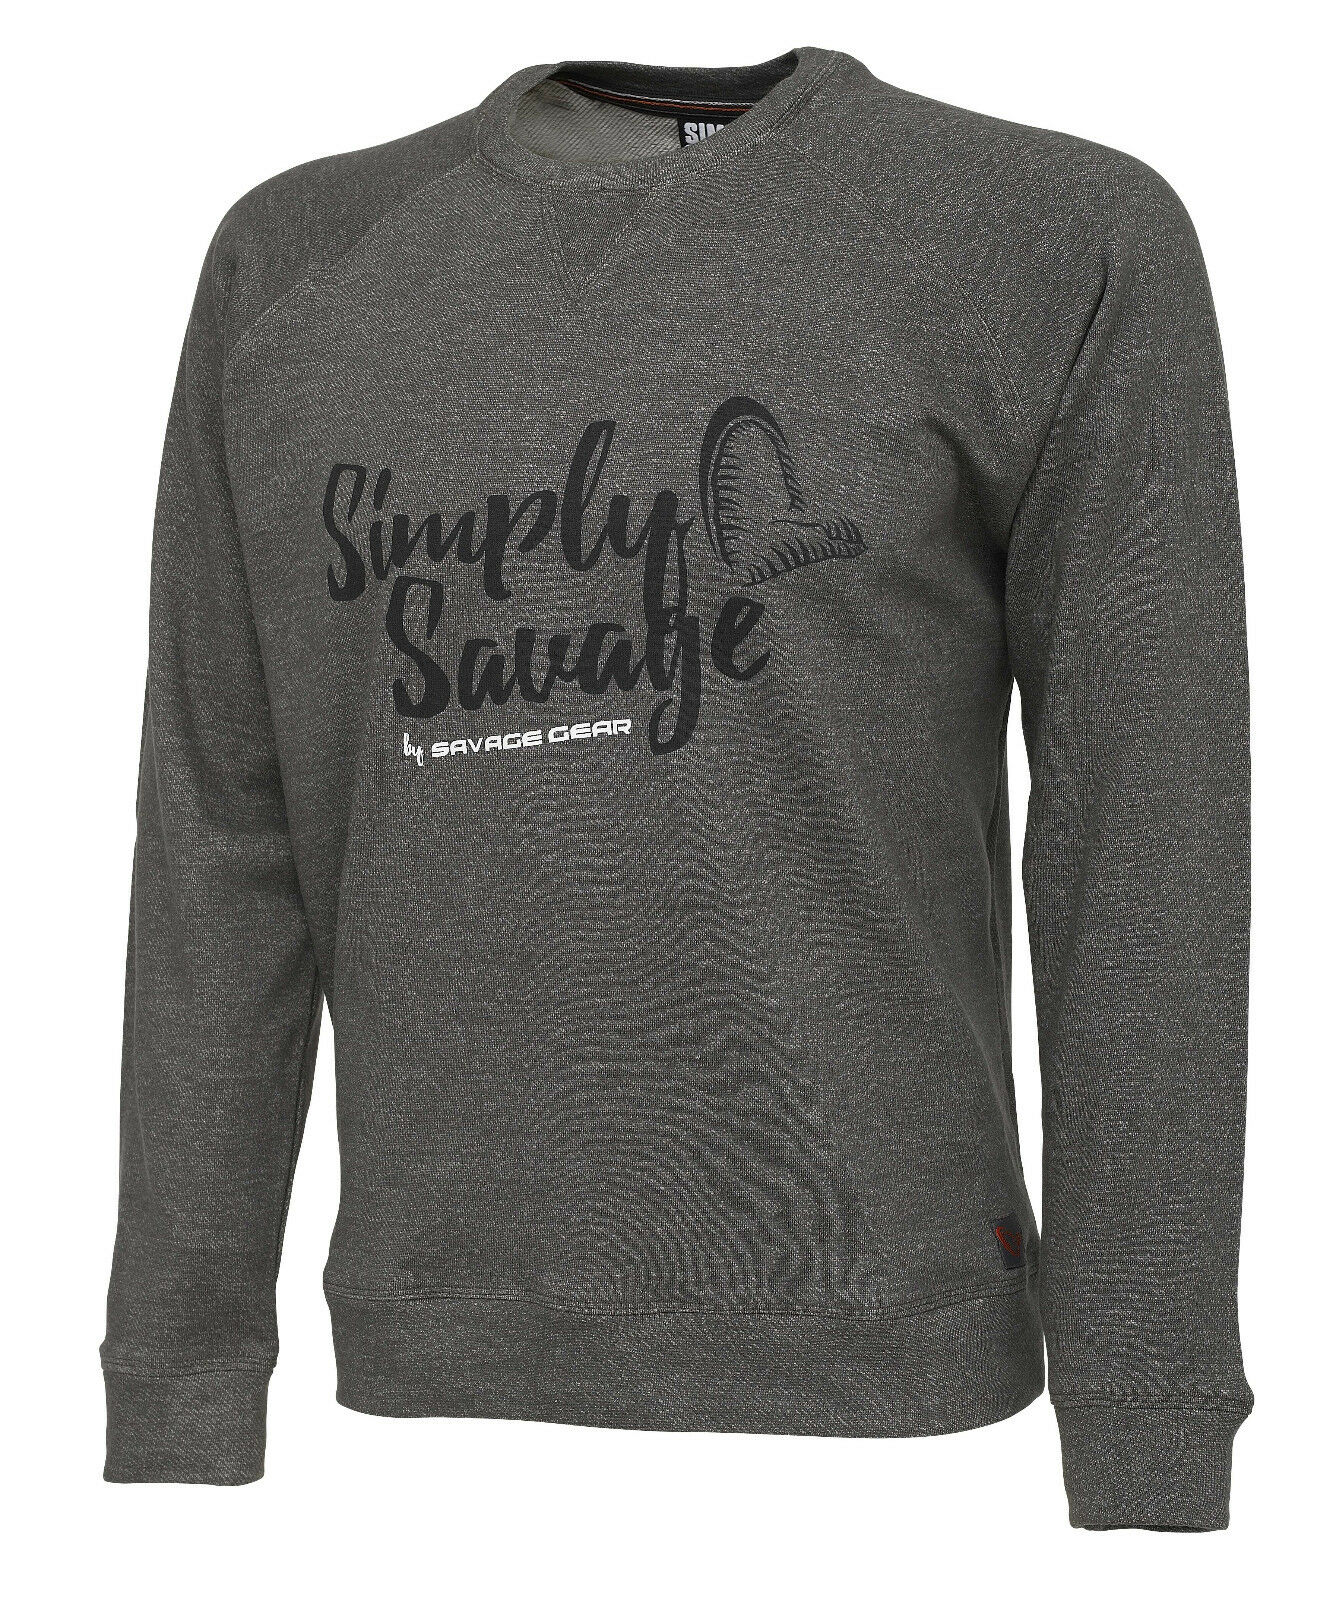 SAVAGE Gear simply SAVAGE  SWEATER melangè Grey S-XXL Sweatshirt  order now with big discount & free delivery